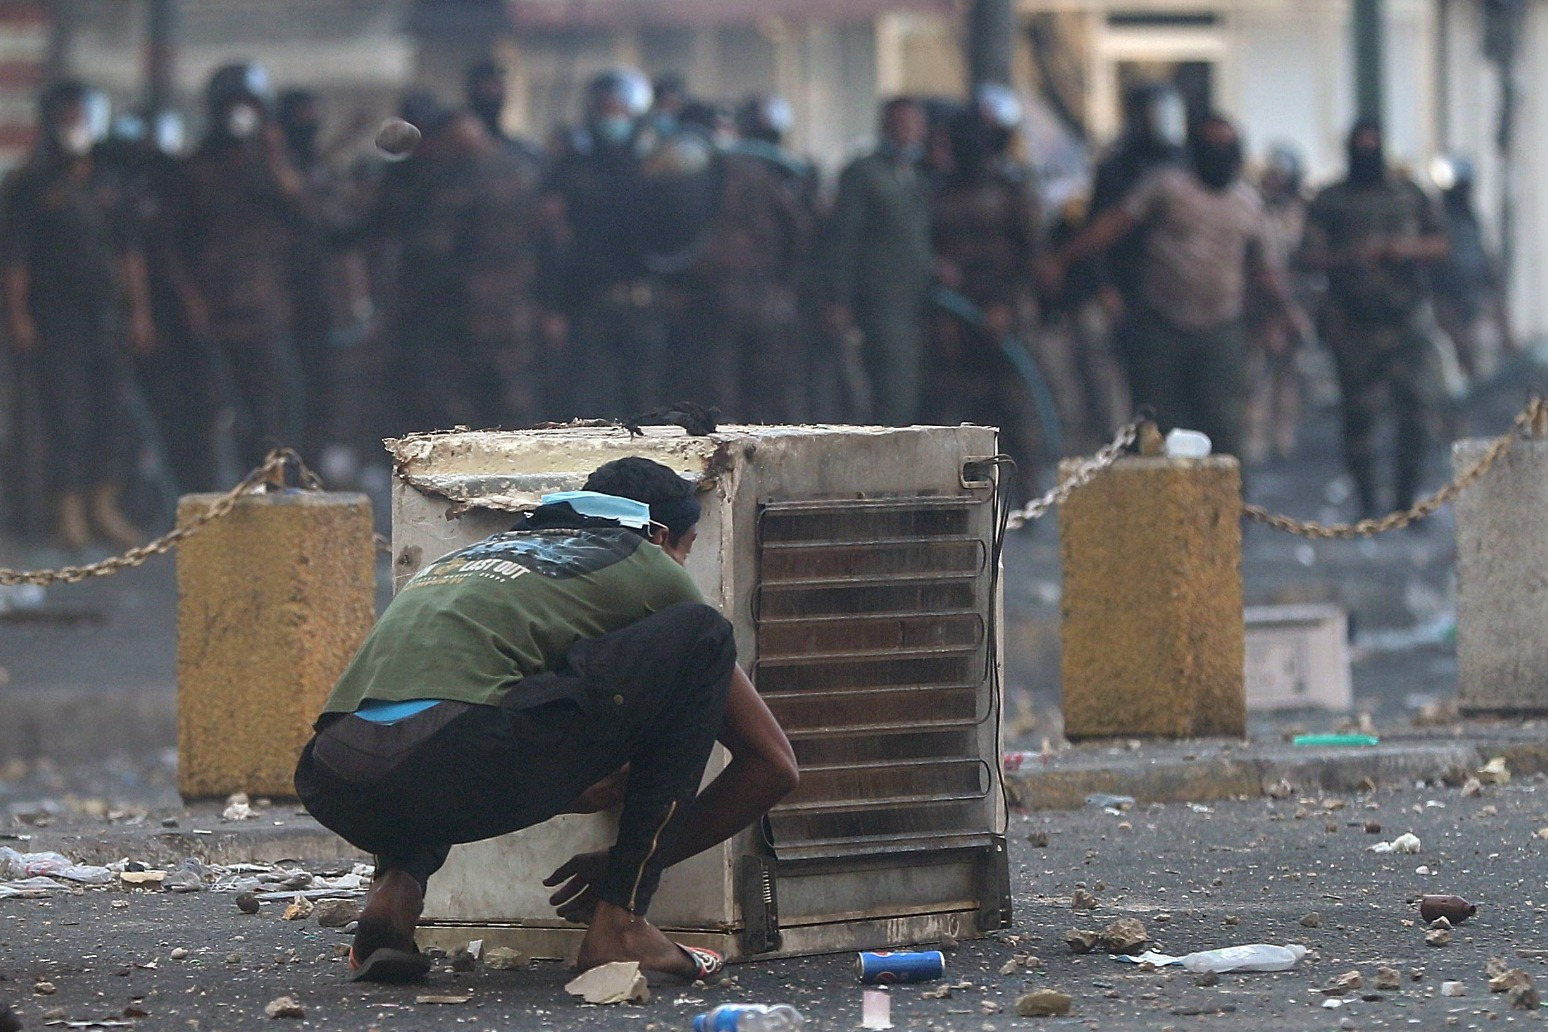 SIX KILLED AND 100 HURT IN BAGHDAD ANTI-GOVERNMENT PROTESTS